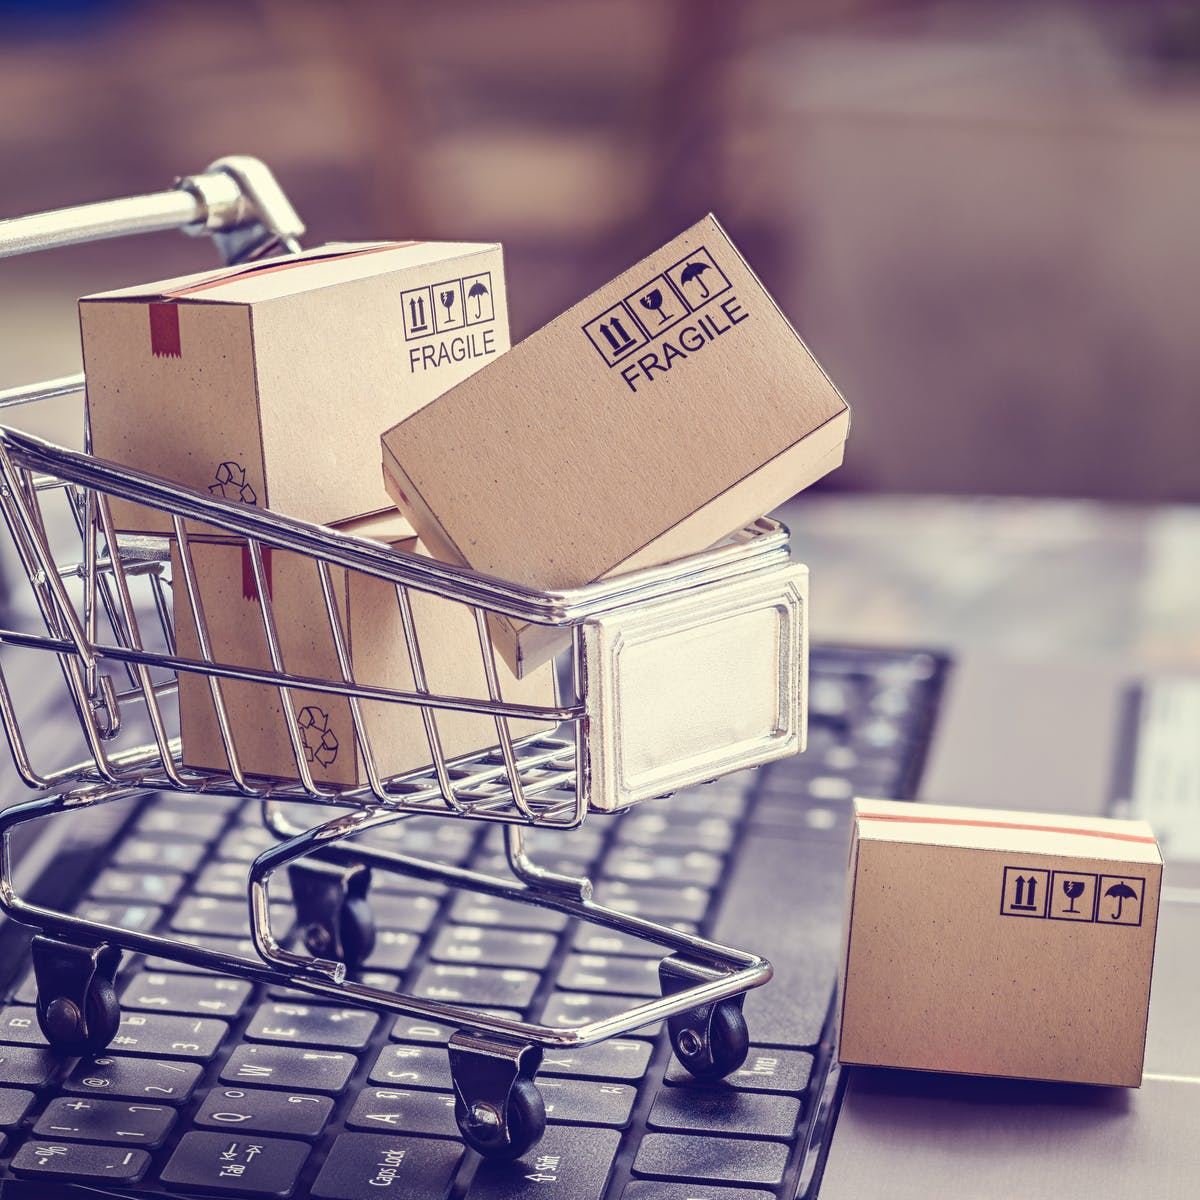 The hidden costs of online shopping – for customers and